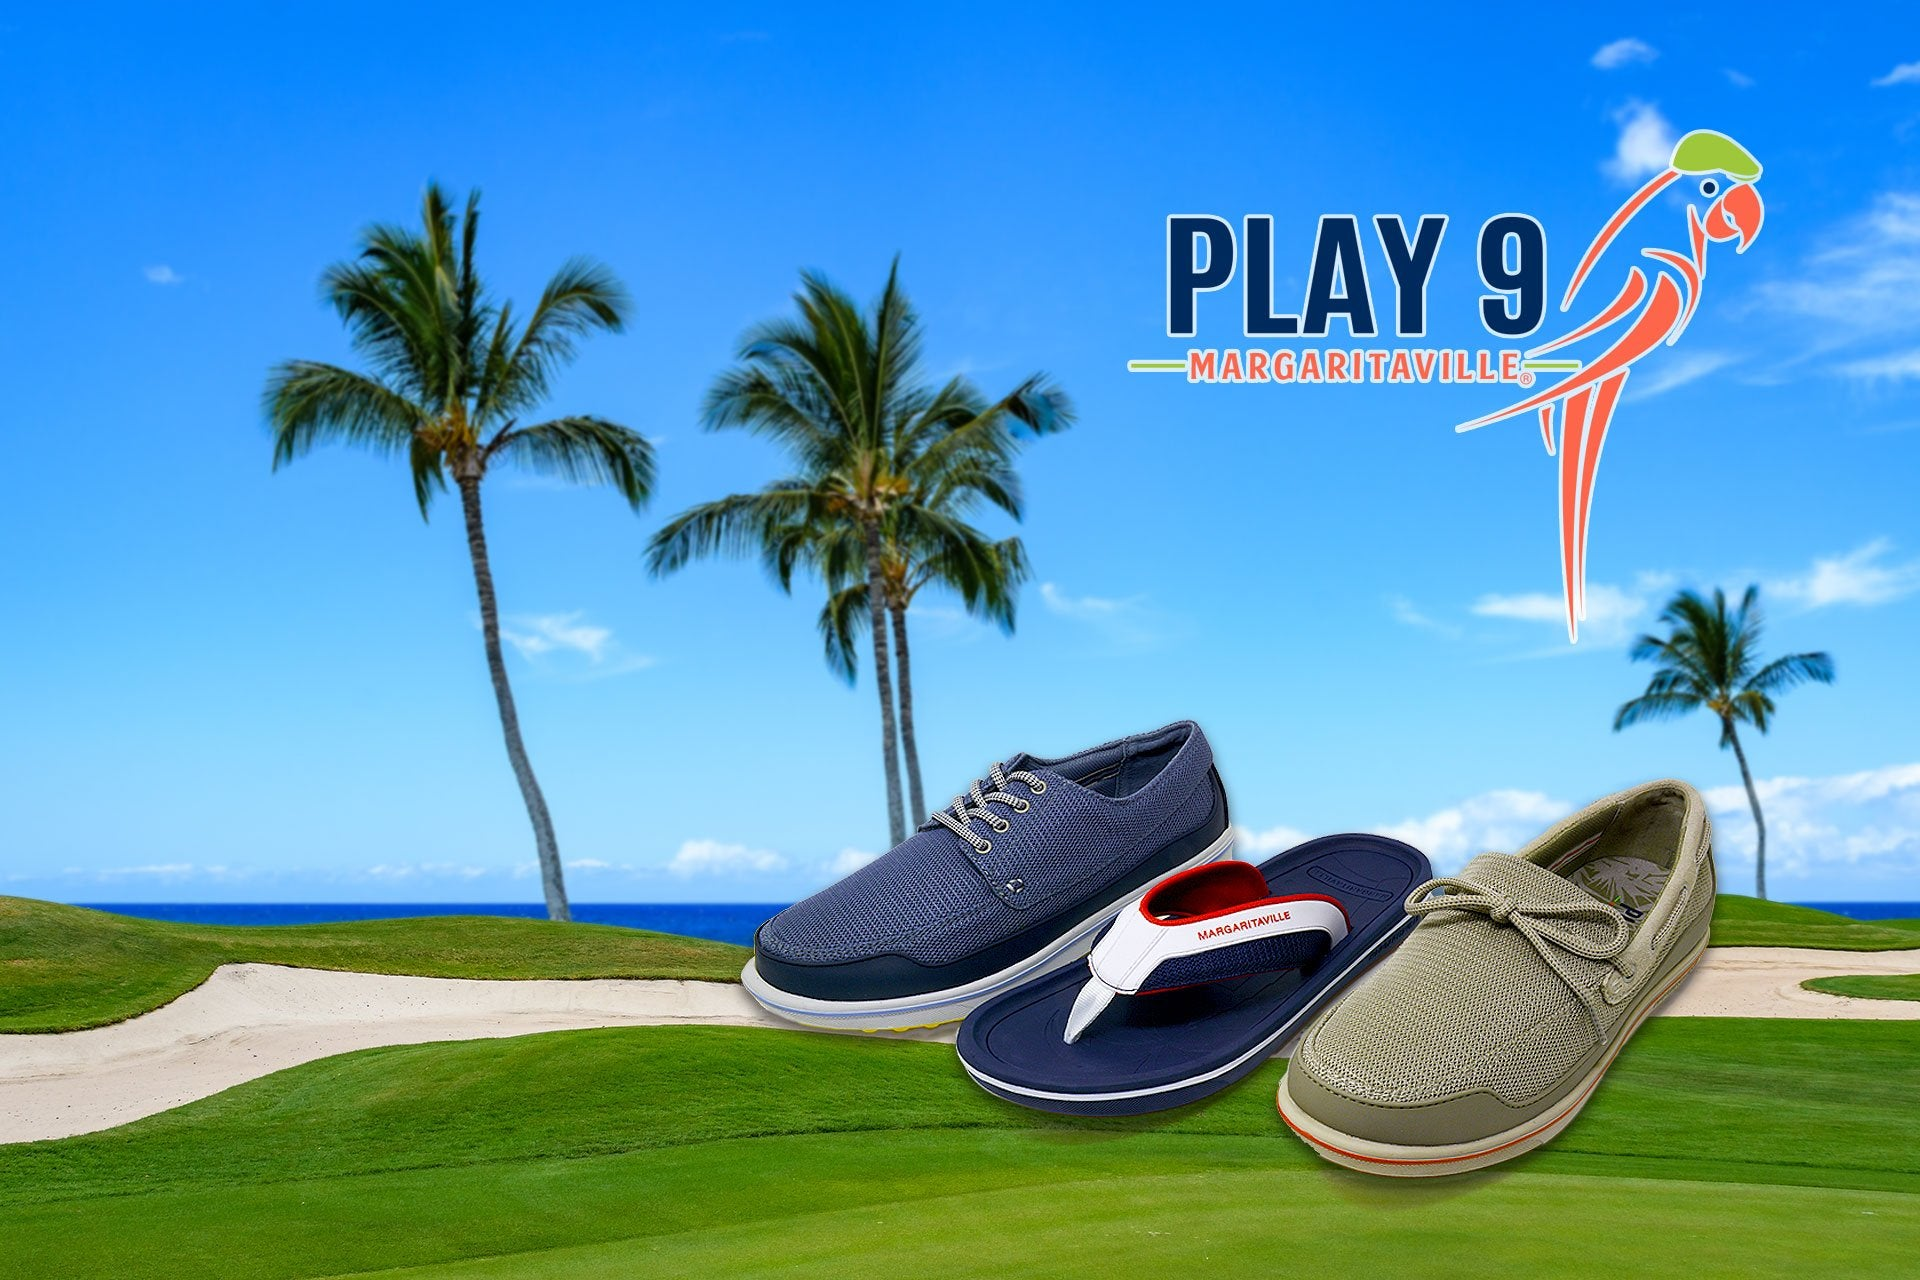 Margaritaville sandals and golf shoes